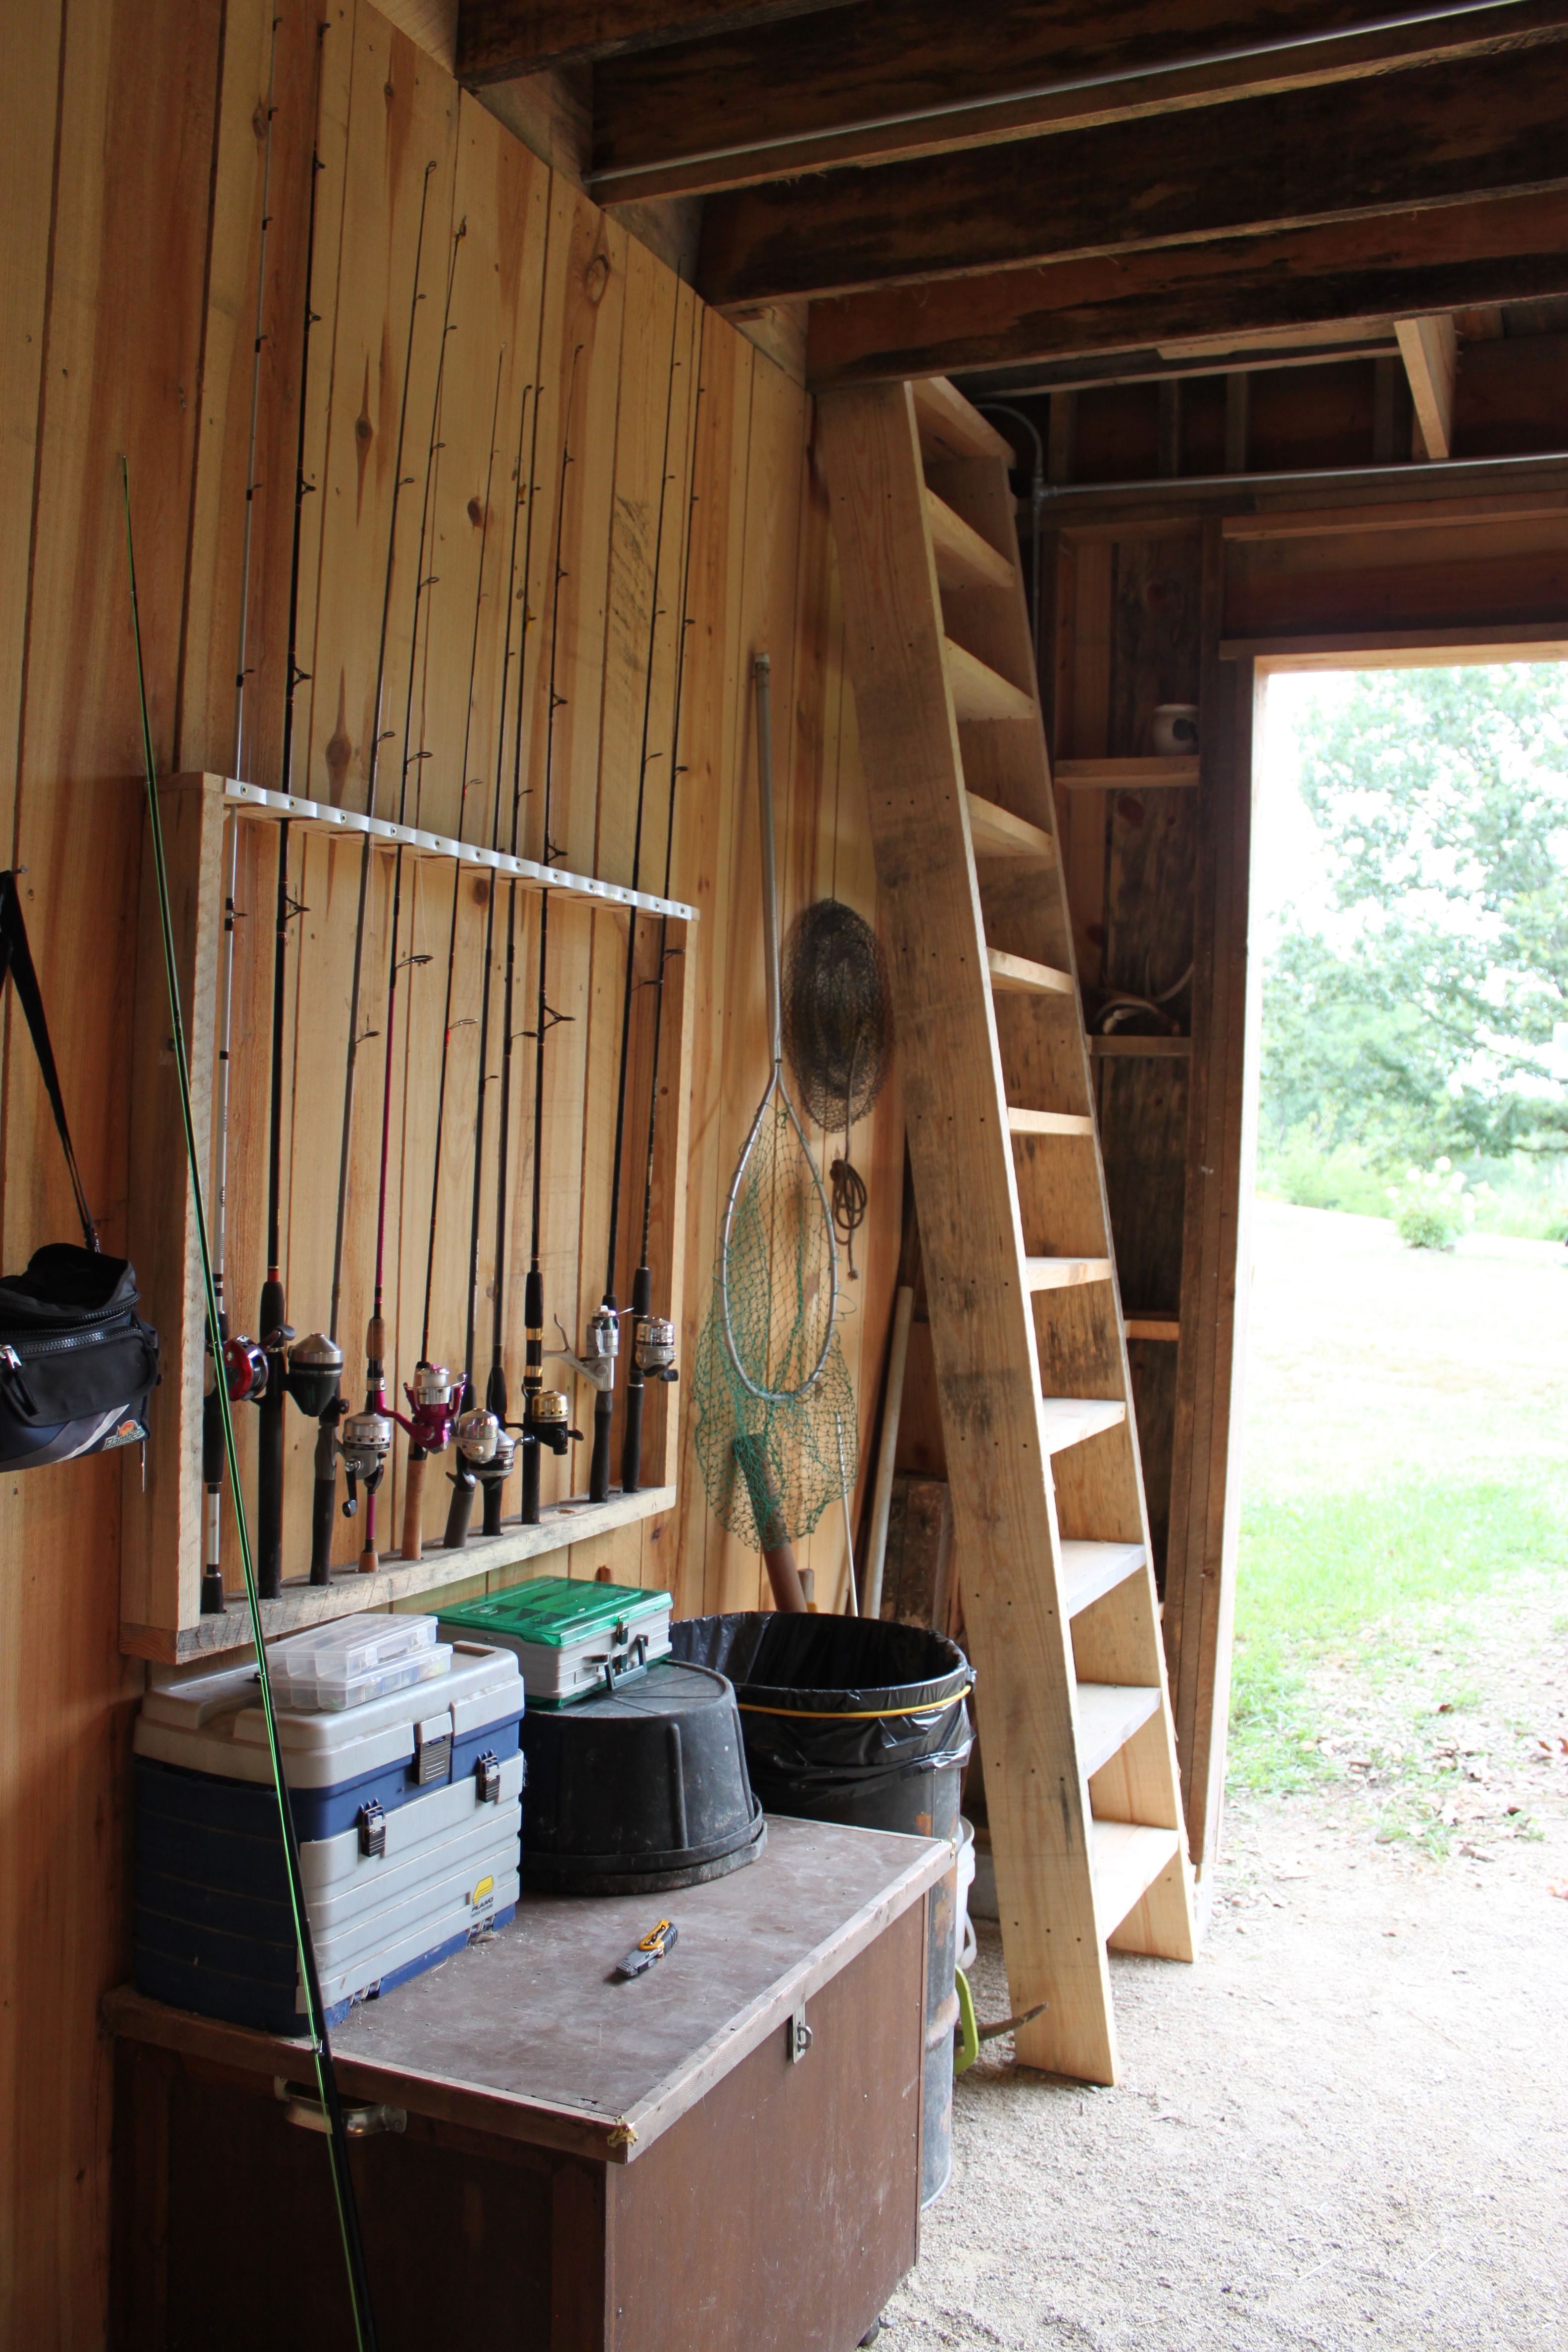 fishing pole rack and scuttle hole ladder